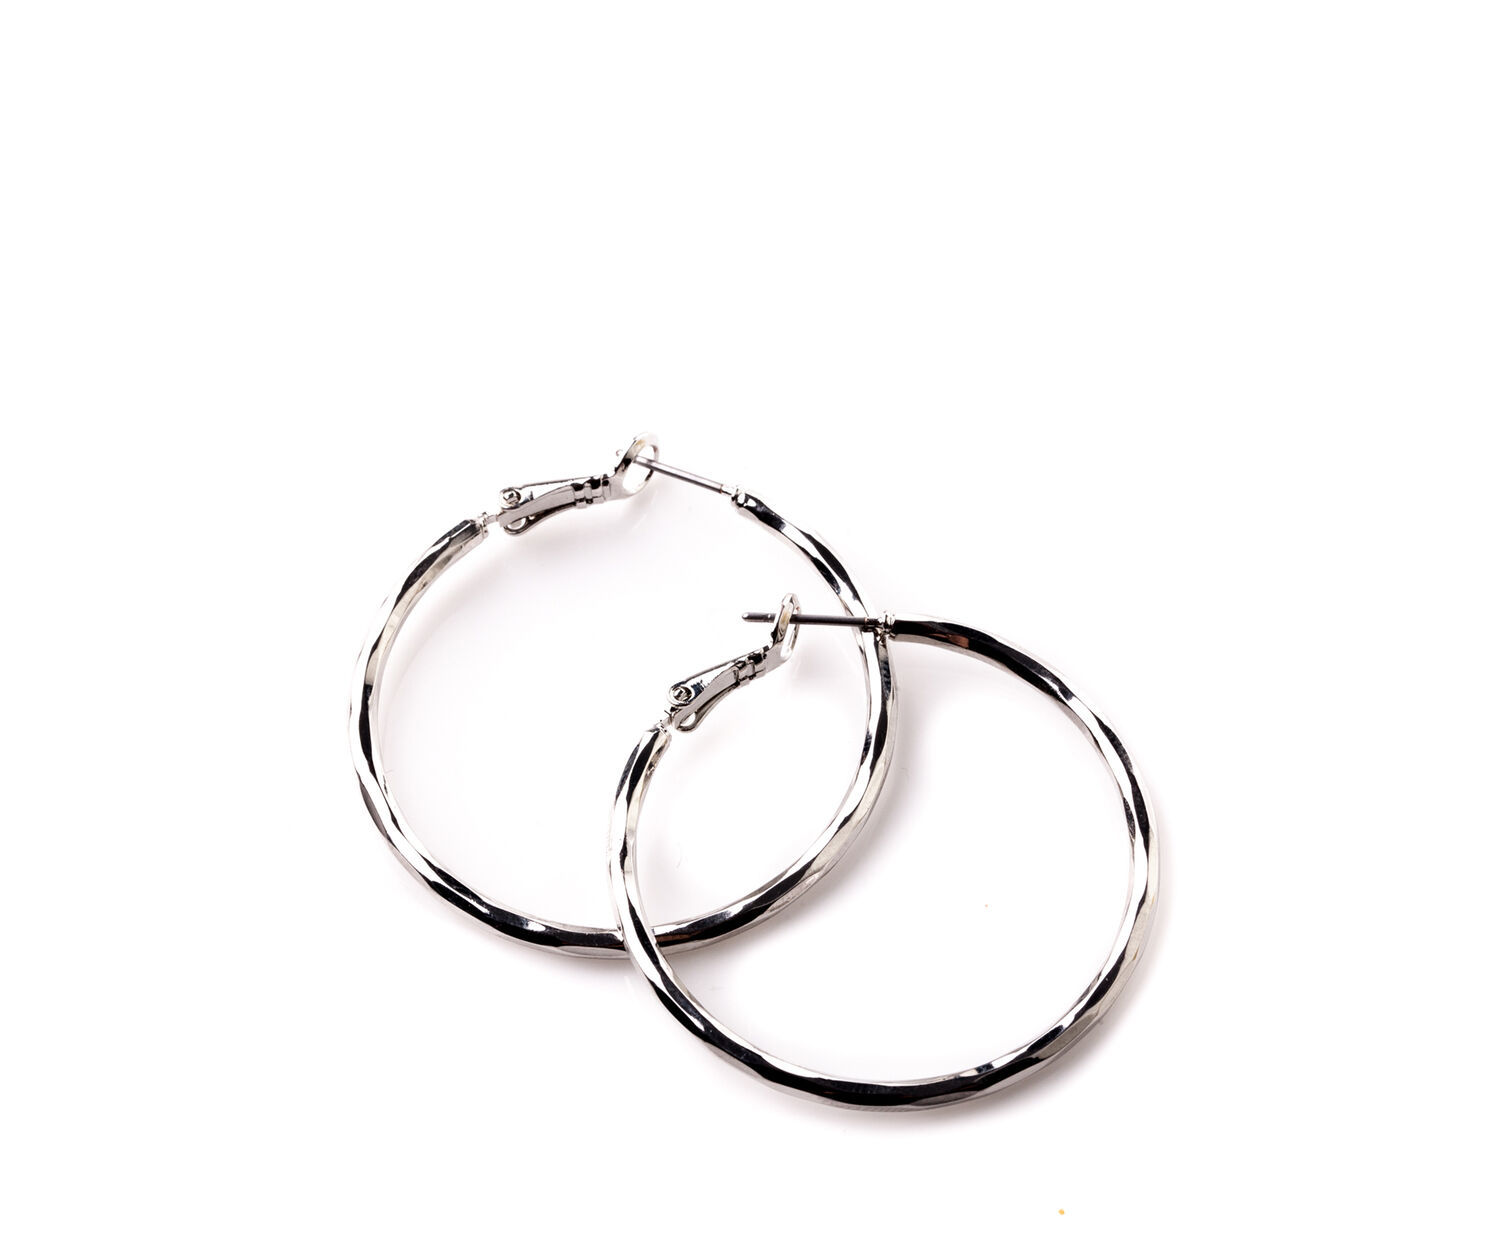 Oasis, BASIC SILVER TONE HOOPS Silver 1